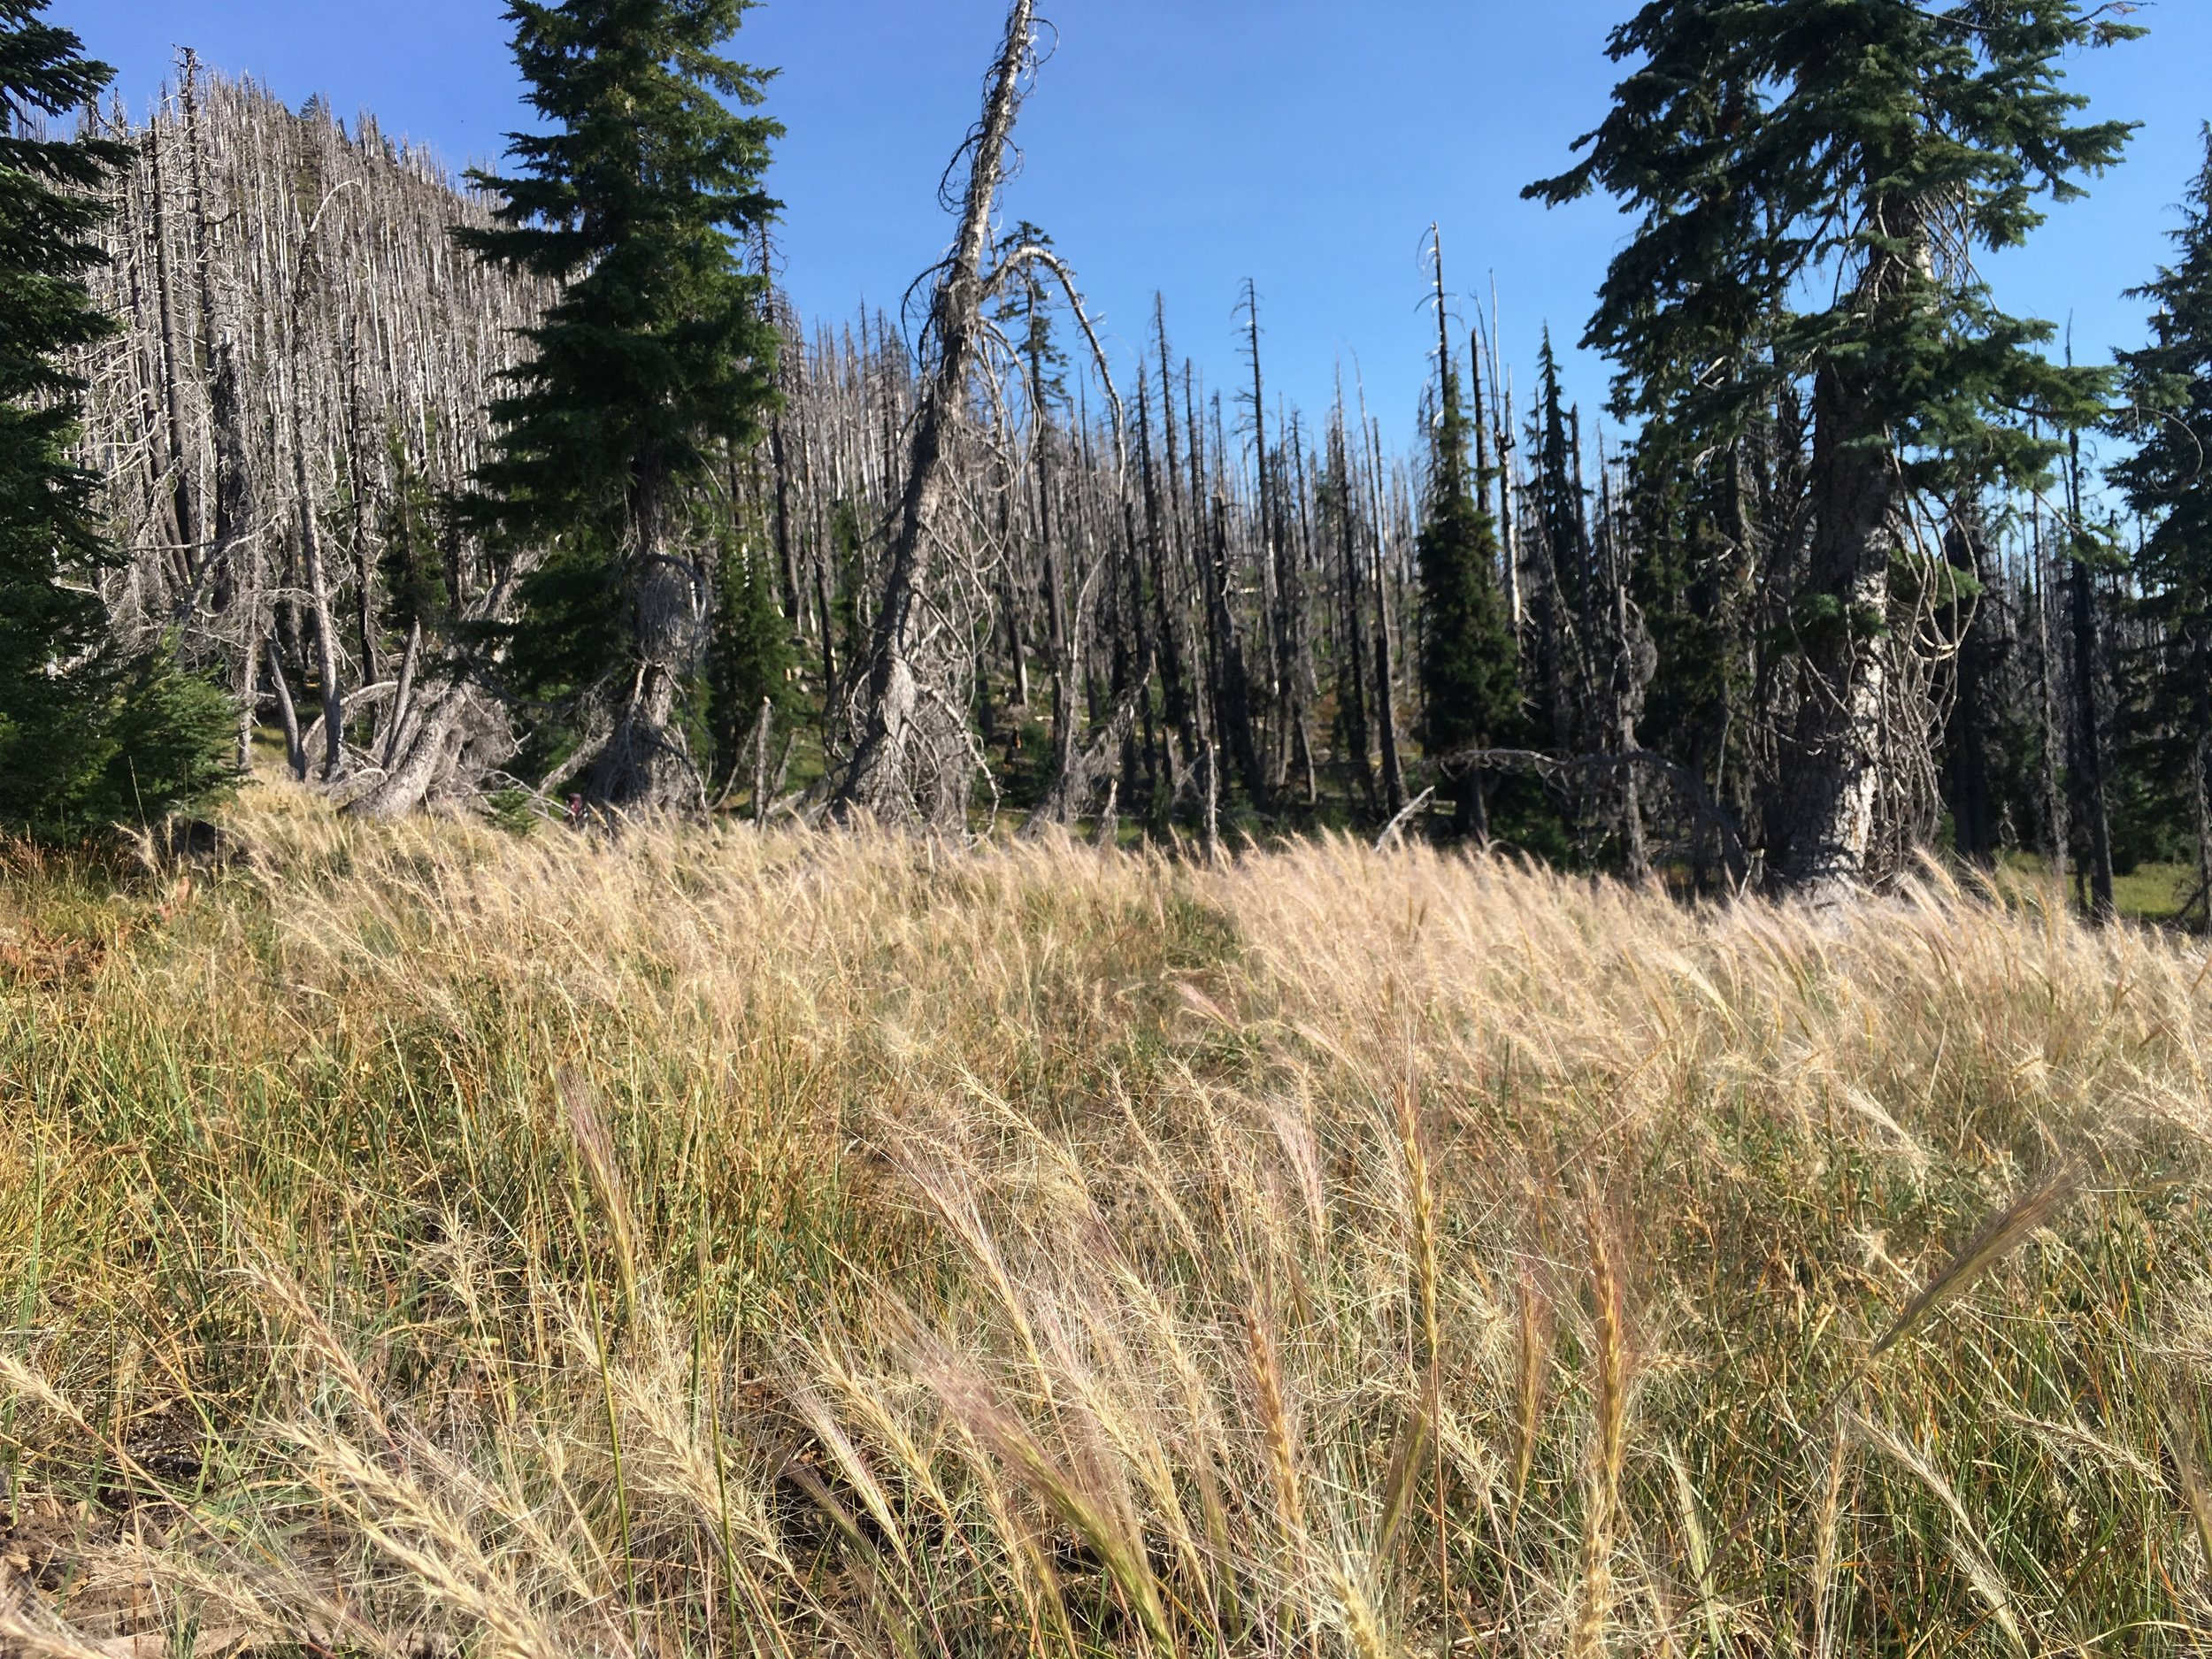 Dry grasses bowing to the breeze amongst the ghosts.